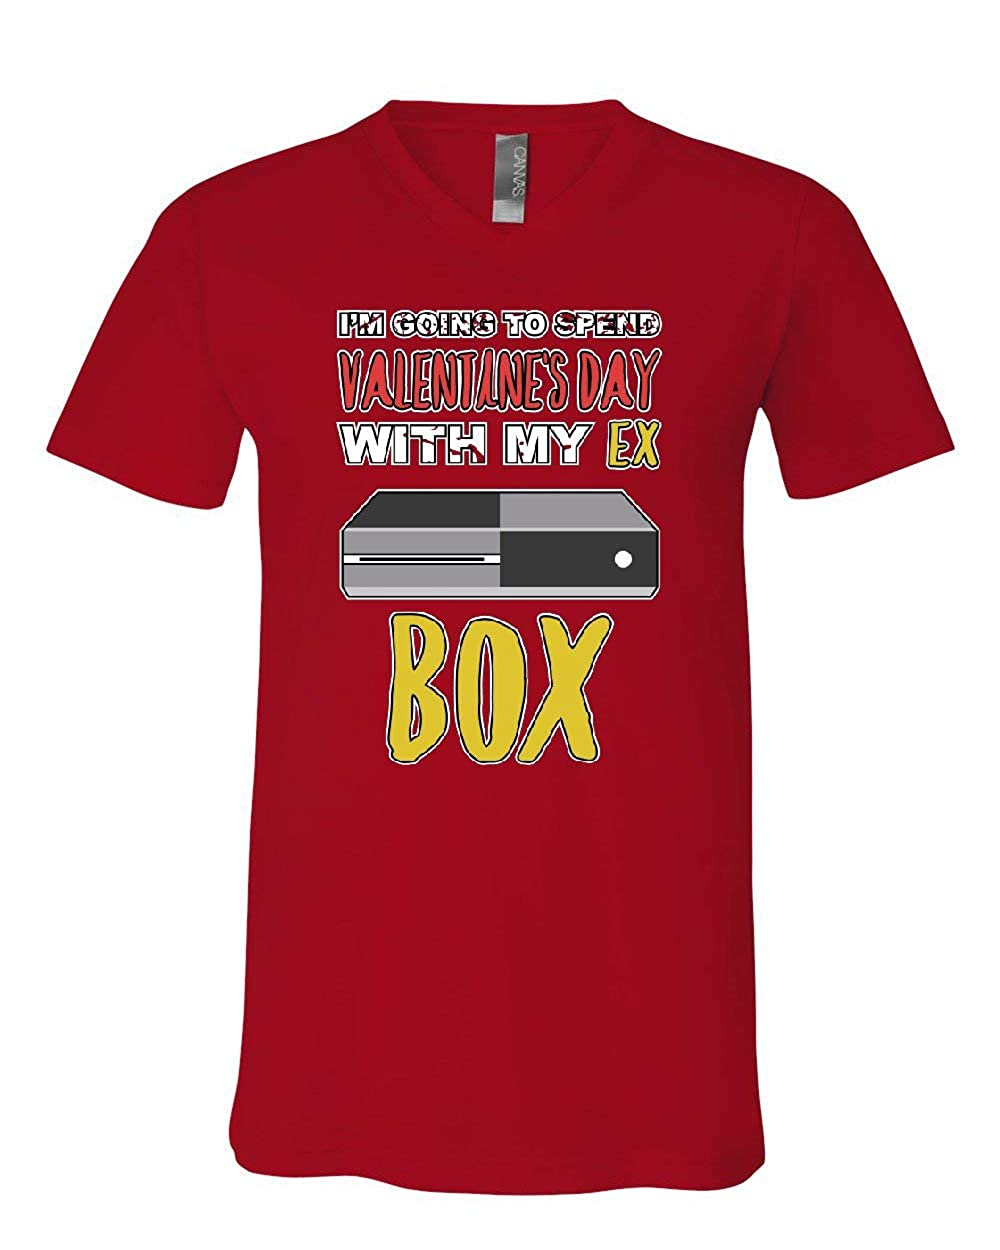 Going to Spend Valentines Day with My Ex Box V-Neck T-Shirt Gamer Love Tee